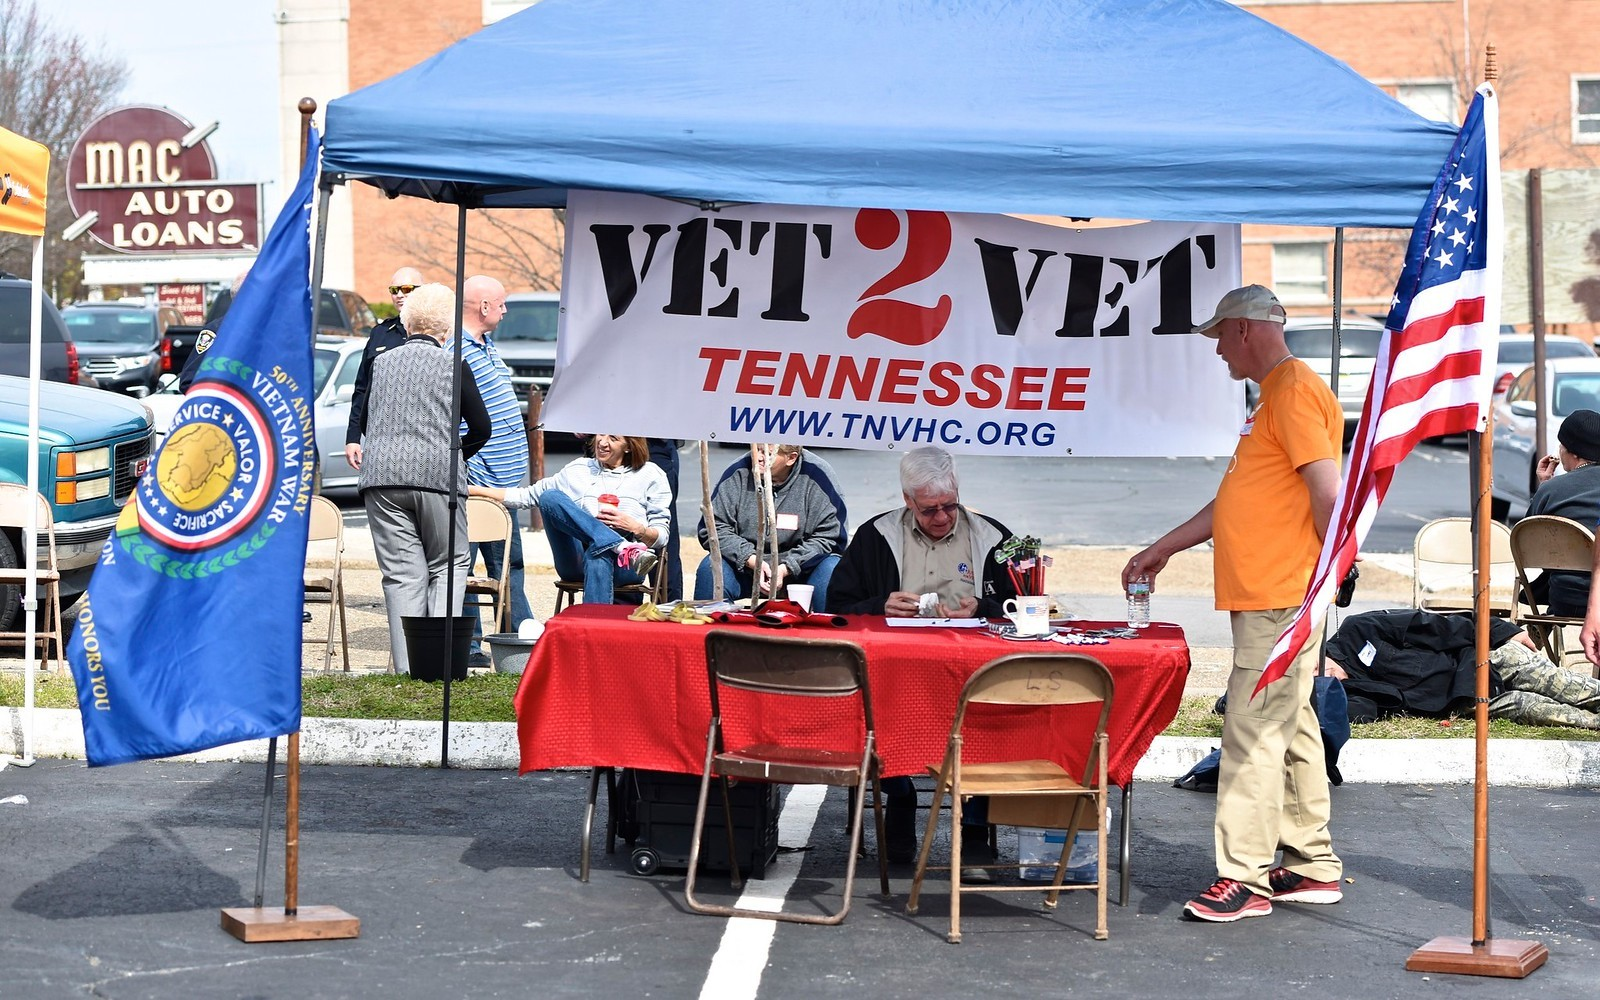 Care Cuts Of Knoxville Ministry Joins Vmfc Vet To Vet Tennessee